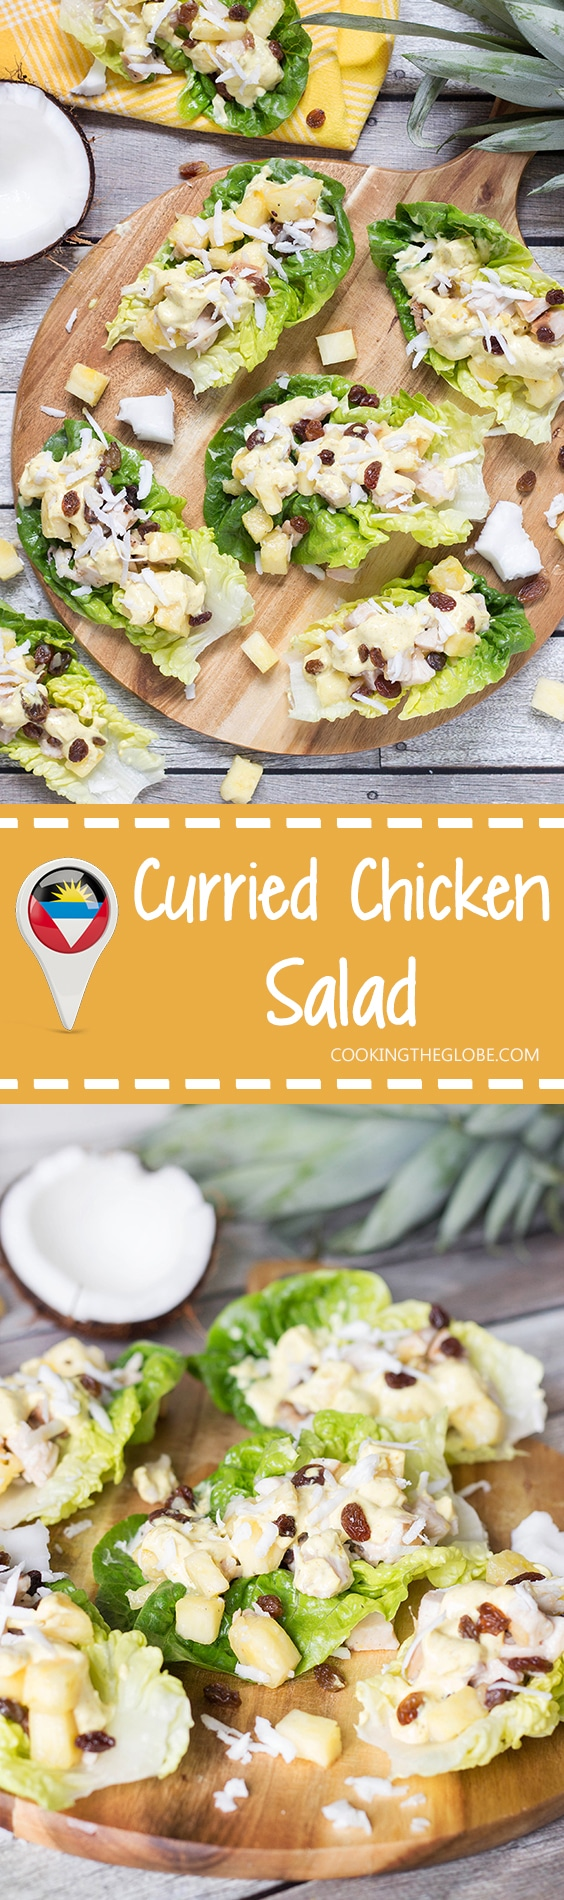 This crazy delicious Curried Chicken Salad comes from the Caribbean, and also features pineapple, coconut, raisins and other goodness! | cookingtheglobe.com